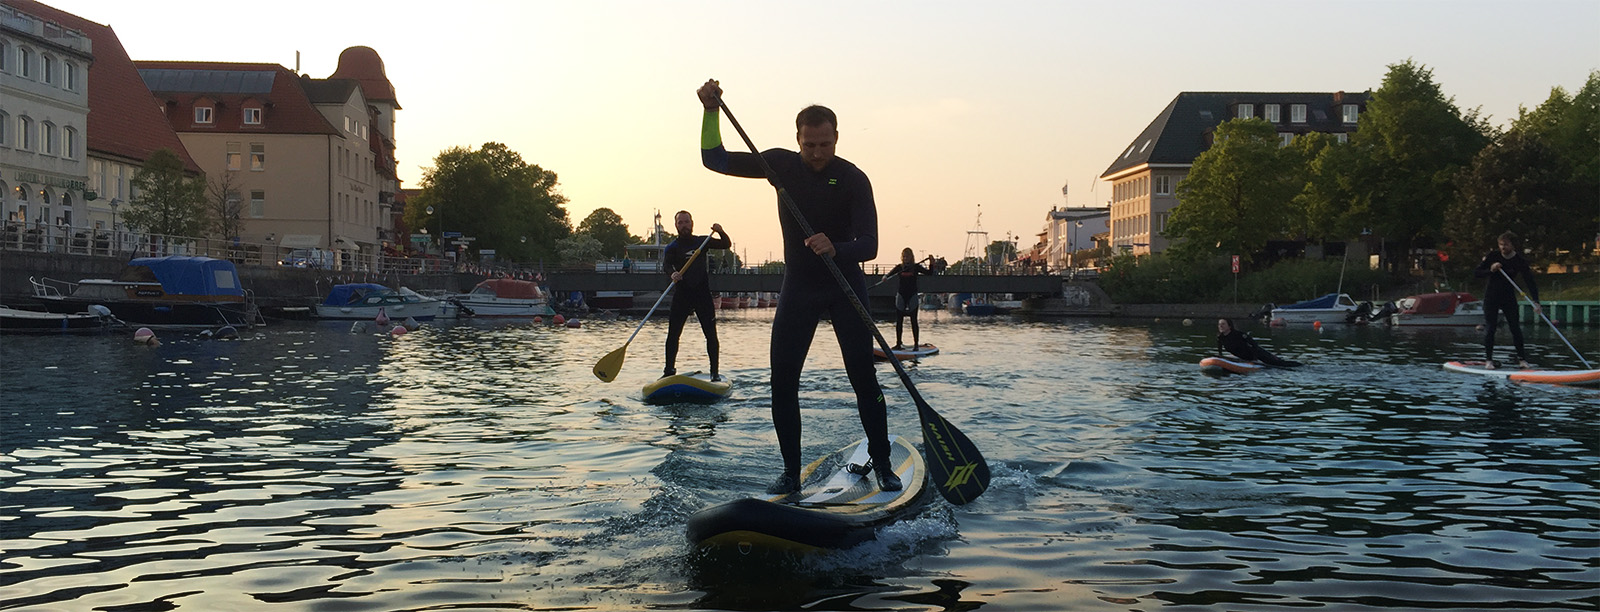 naish one sup race